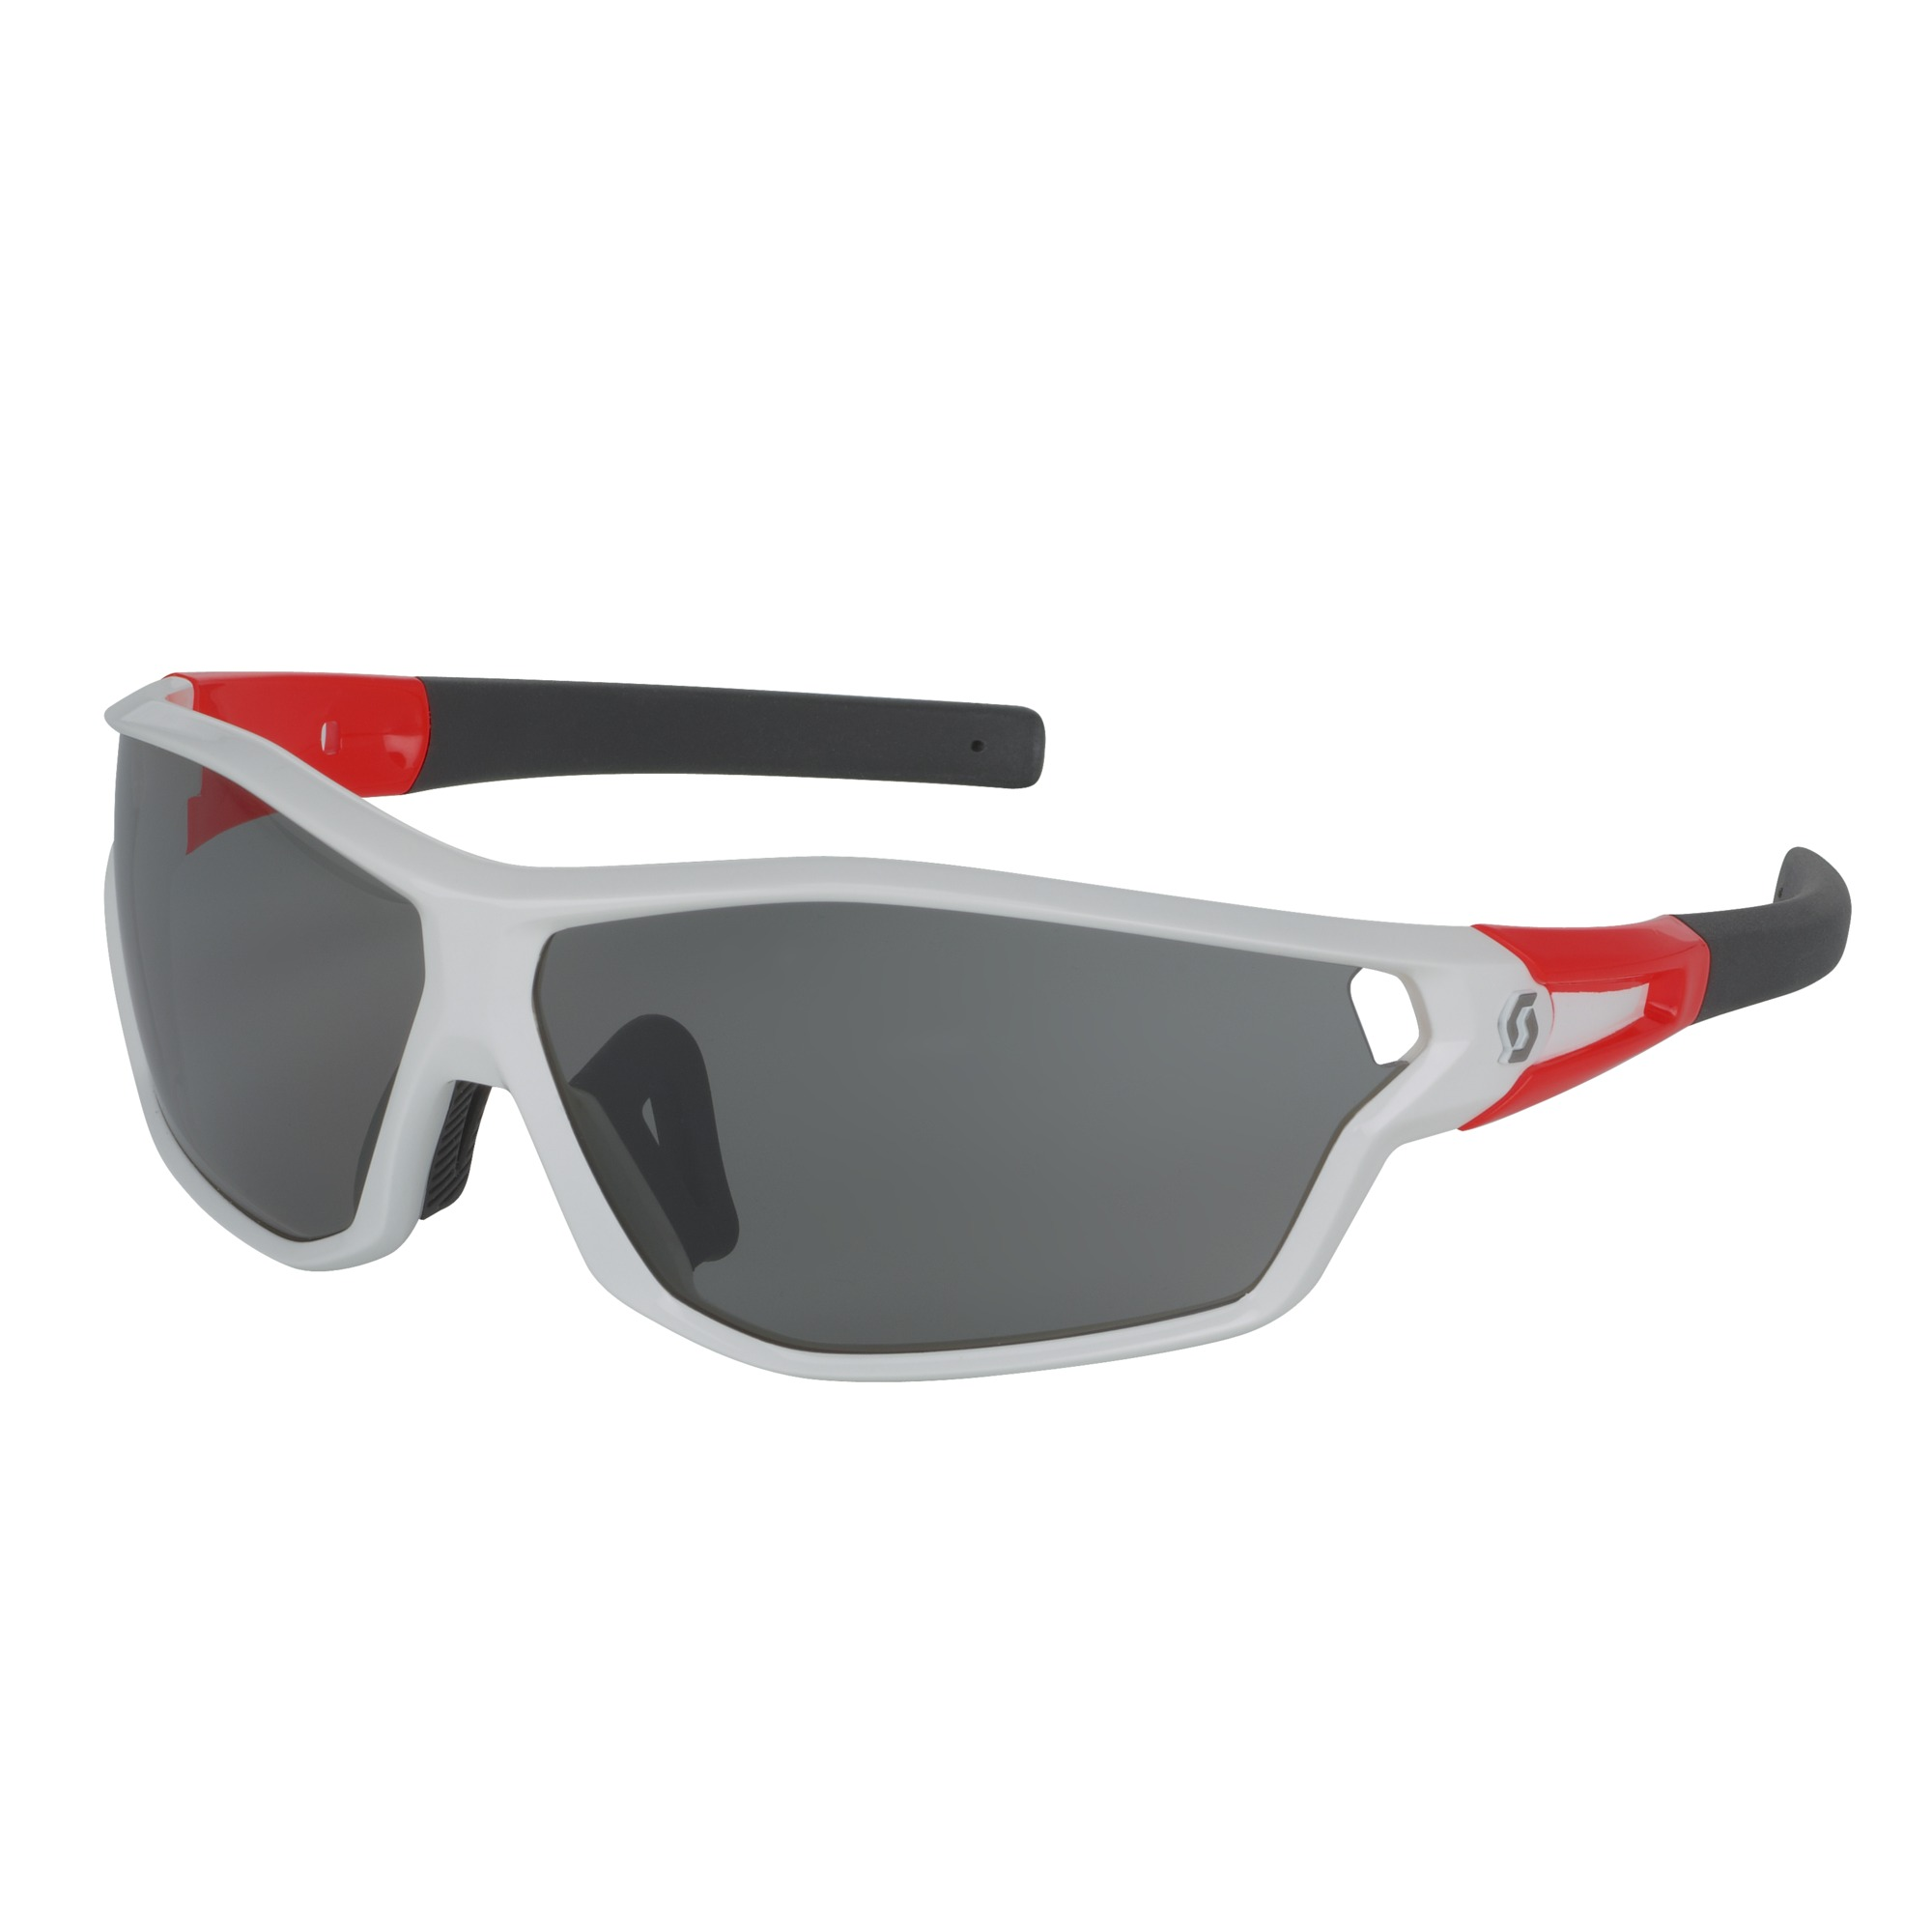 OCCHIALE SPORTIVO SCOTT LEAP FULL FRAME LS SUNGLASSES 235513 white glossy red grey.jpg